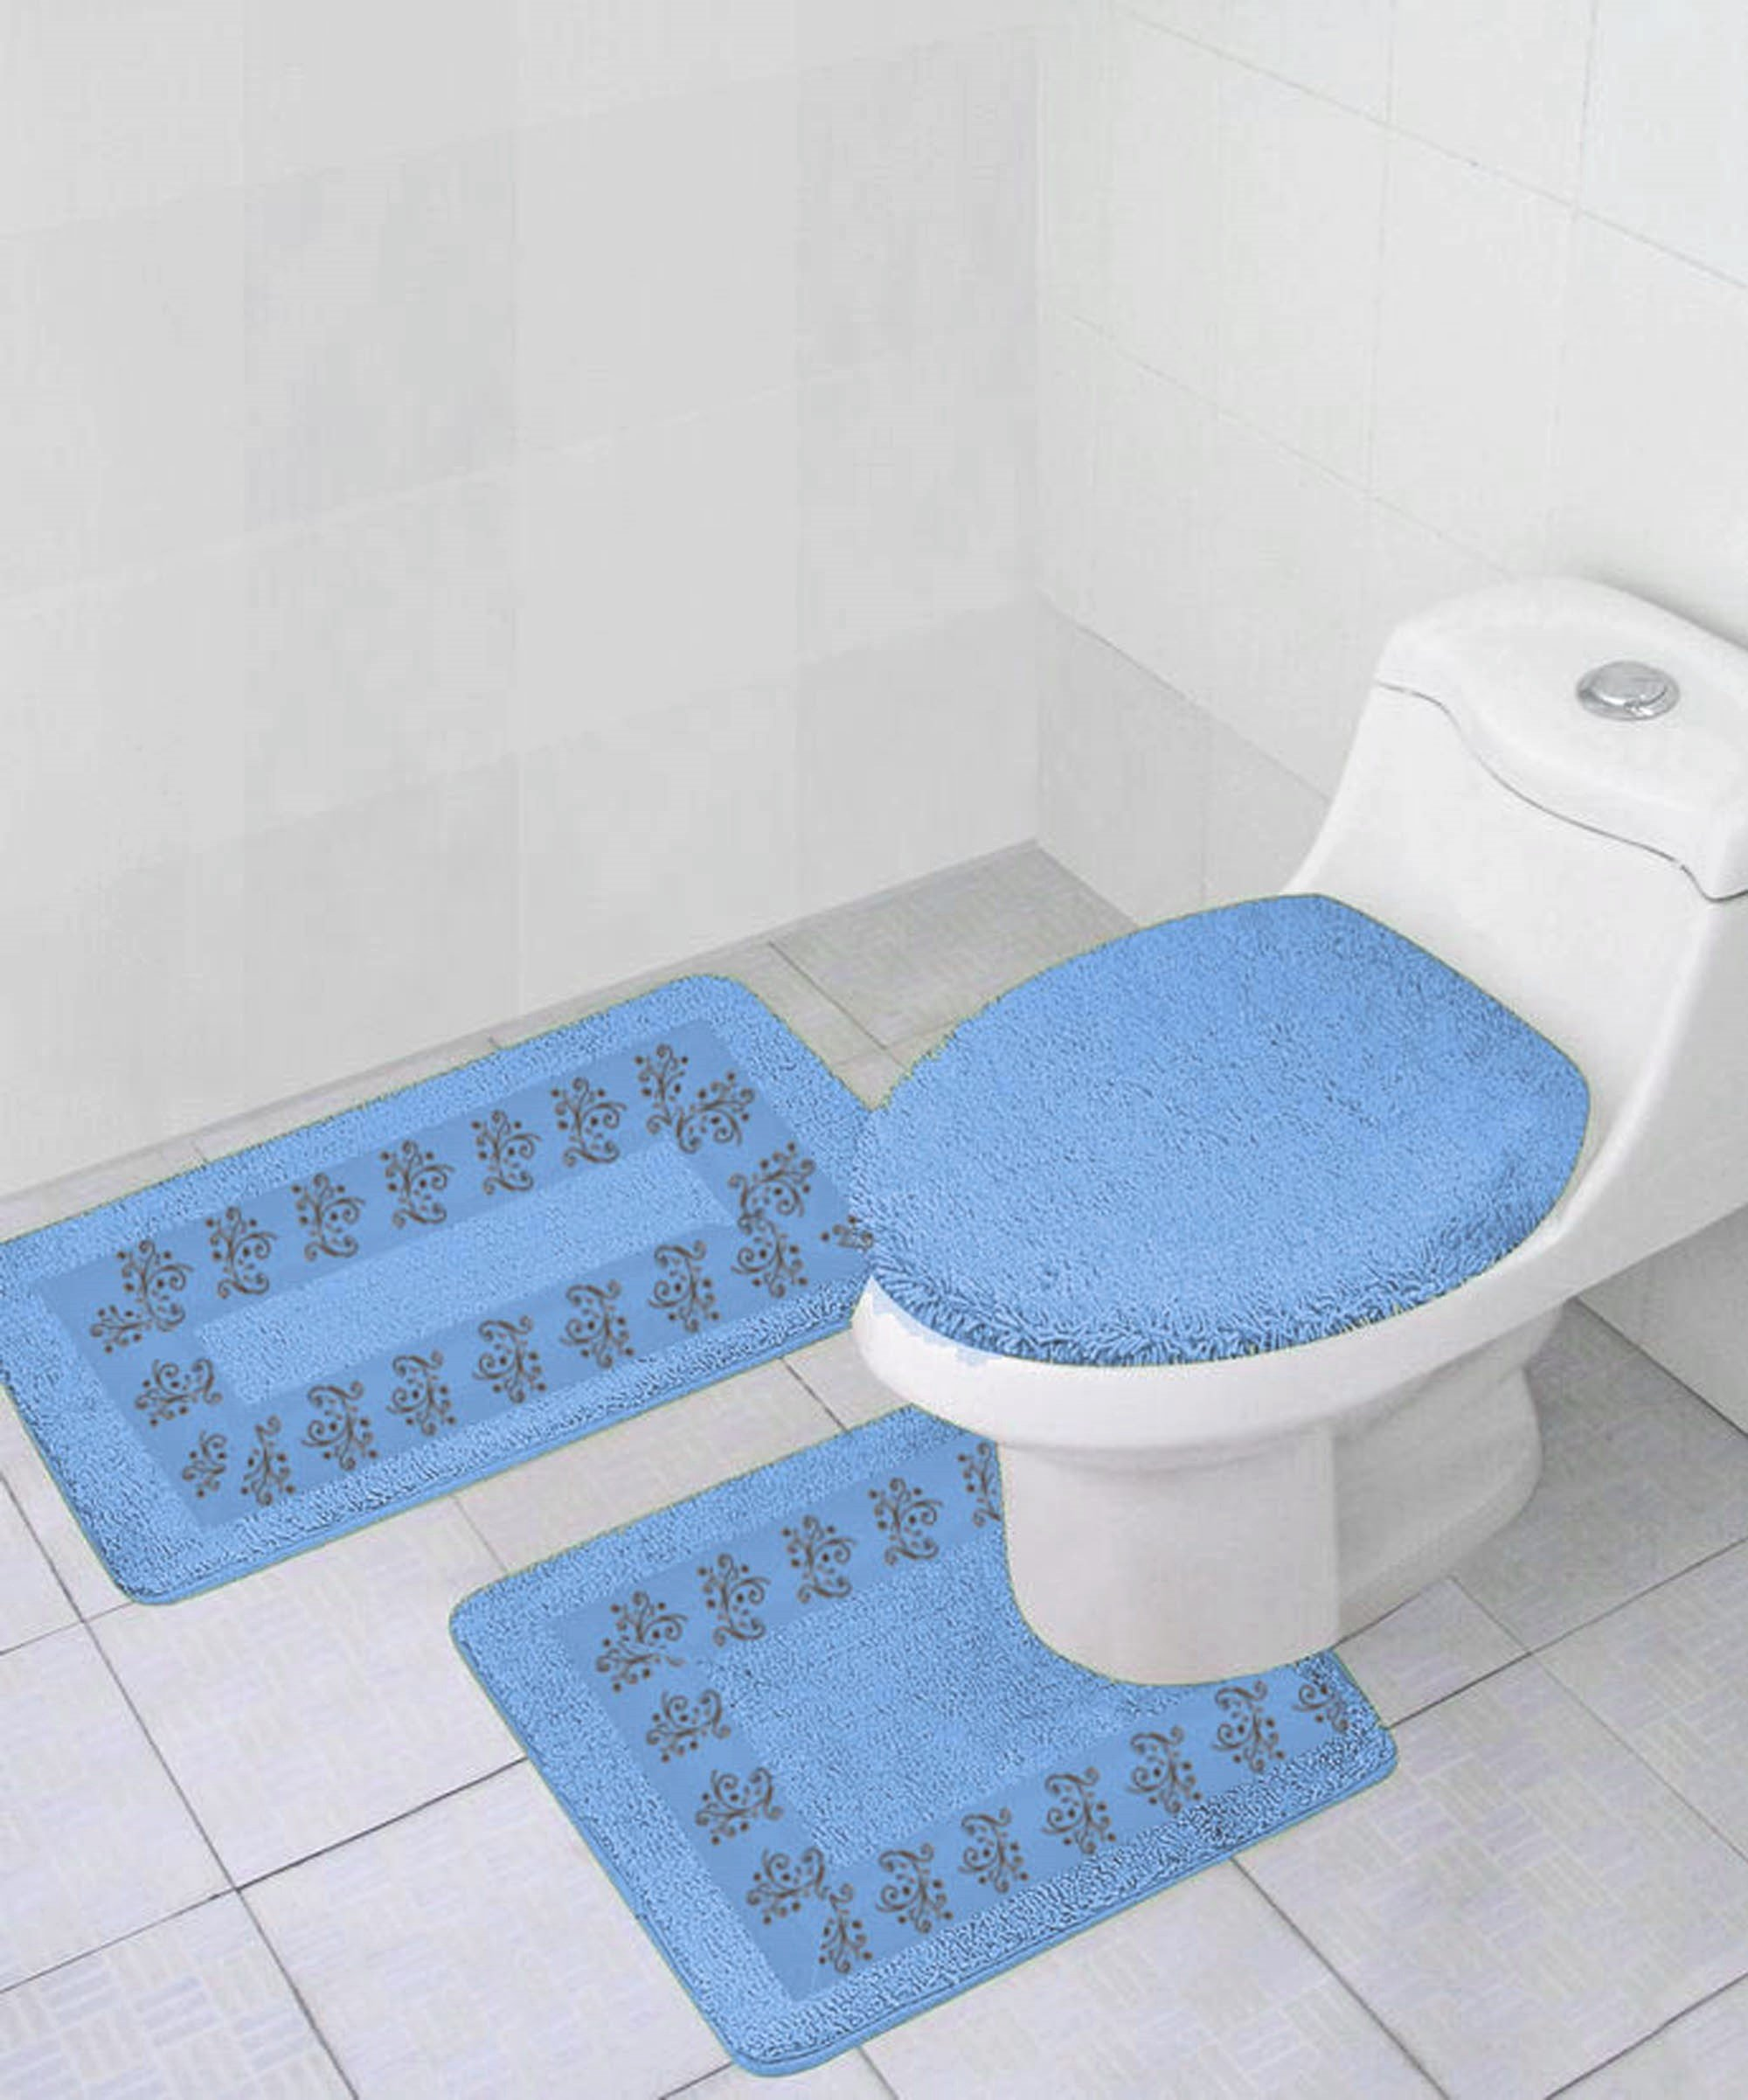 GorgeousHomeLinenDifferent Colors 3-Piece Embroidery Bathroom Rug Set Includes, Contour Mat + Lid Toilet Cover + Bath Mat Ultra Absorbent with Anti-Slip Backing (Light Blue)